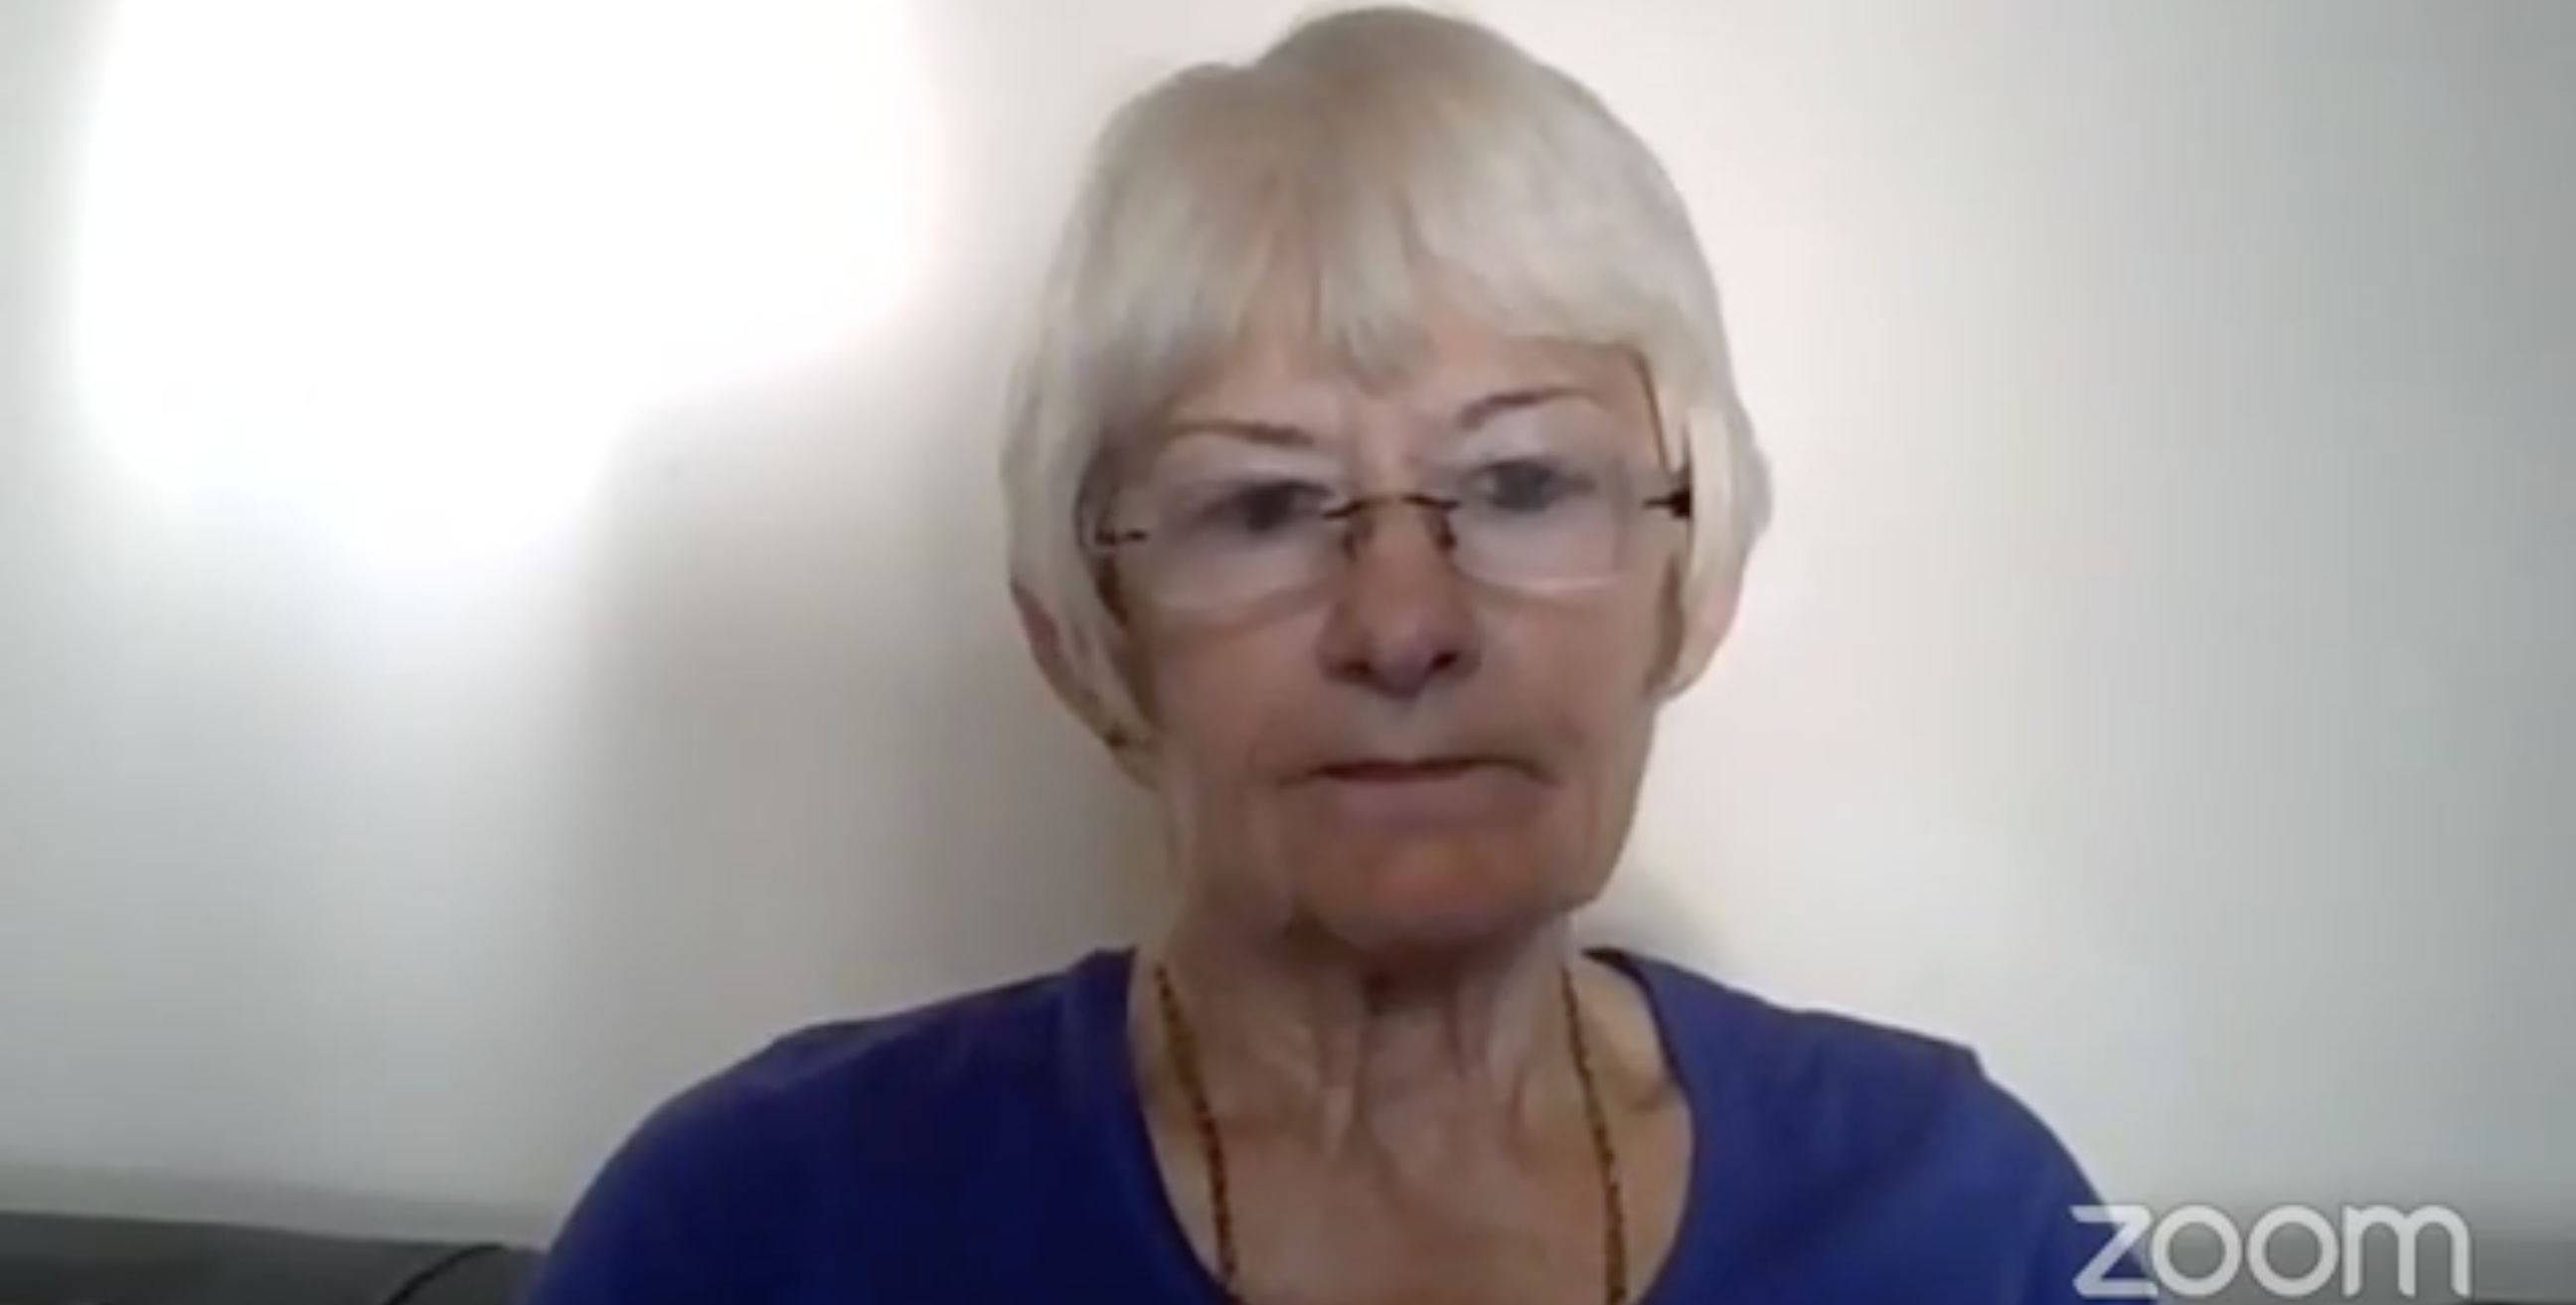 Enquiry launched into security fence at Manchester halls, confirms VC prof dame nancy rothwell